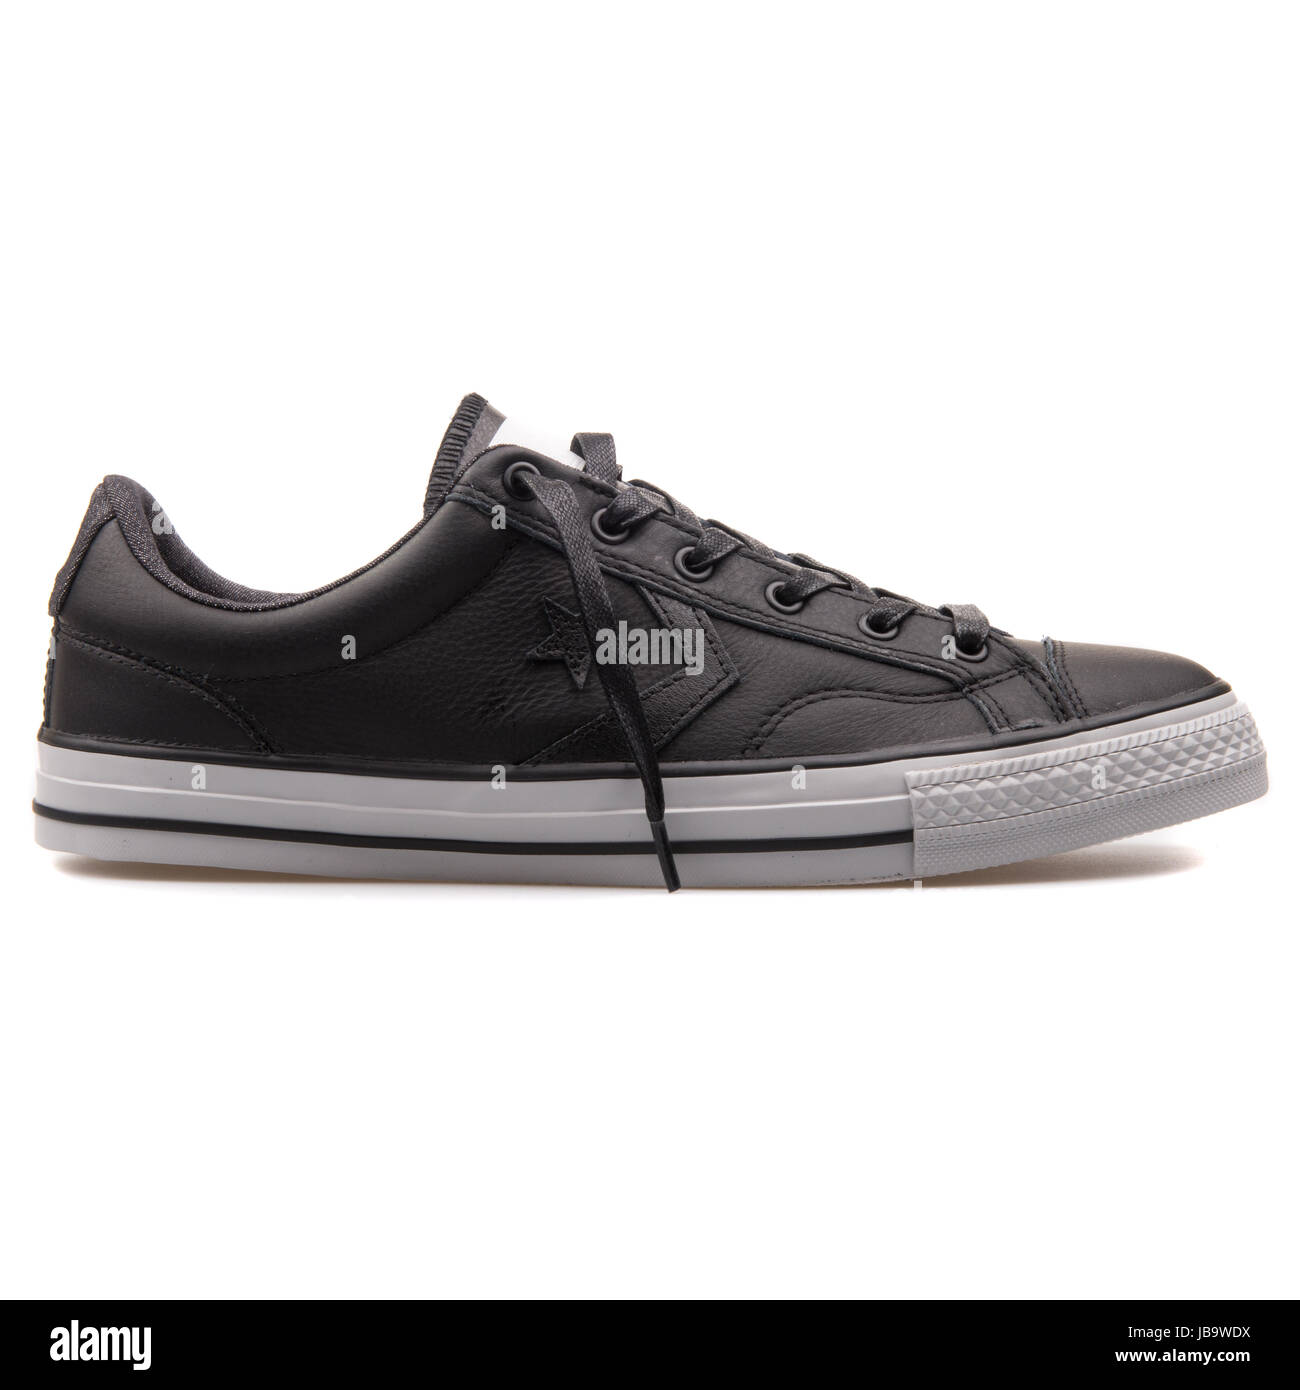 51b2fcbf41258 Converse Chuck Taylor All Star Player OX Black Leather Unisex Shoes -  149765C